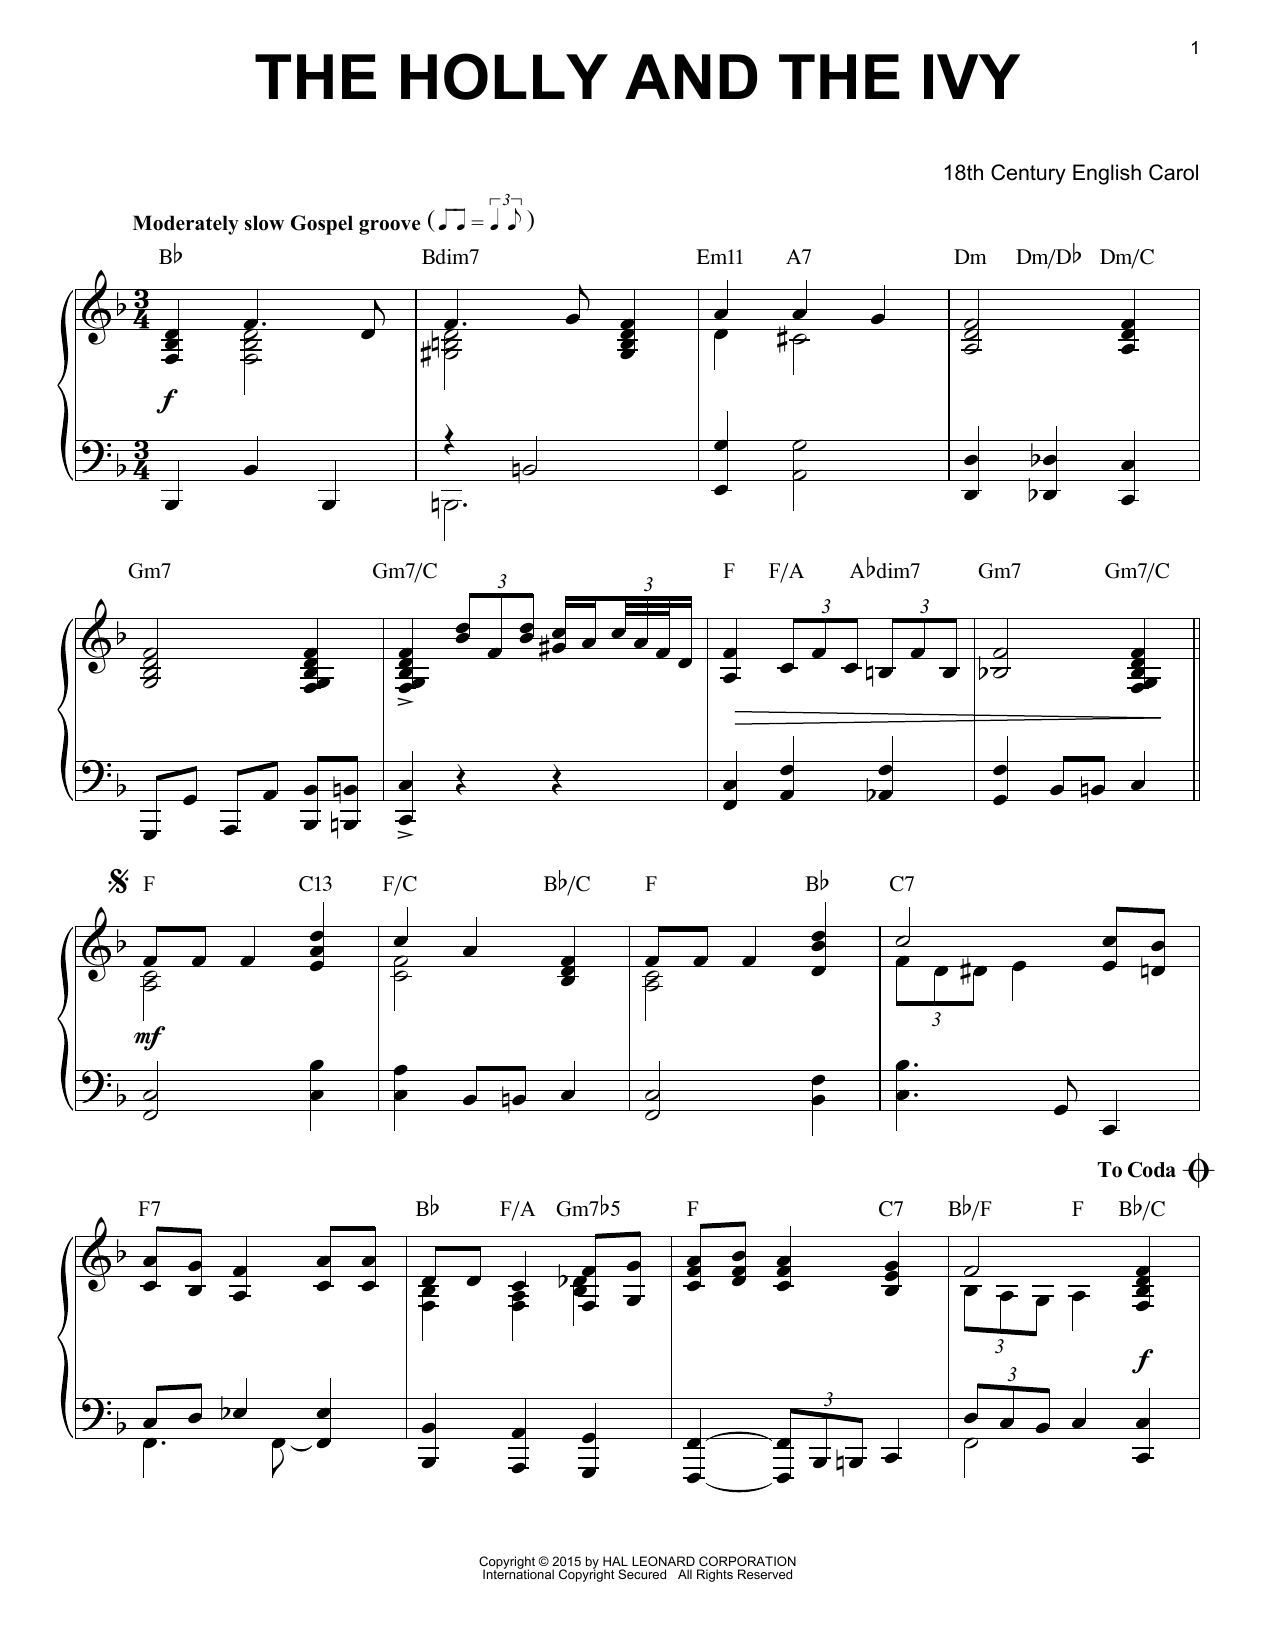 18th Century English Carol The Holly And The Ivy [Jazz version] (arr. Brent Edstrom) sheet music notes and chords. Download Printable PDF.